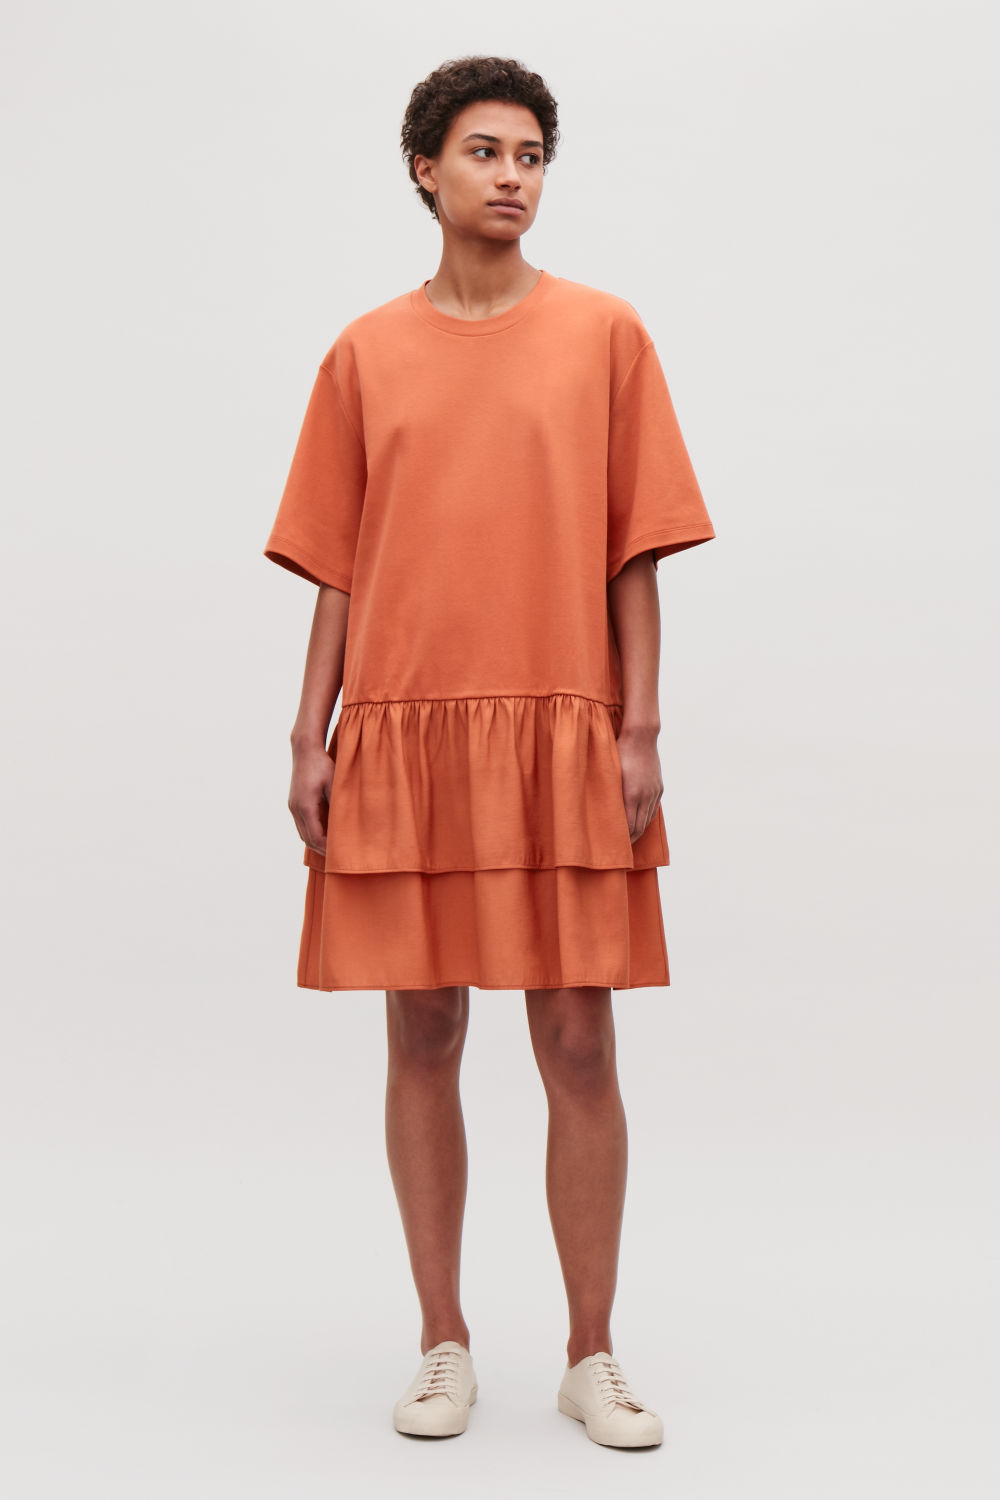 COS FRILL-DETAILED COTTON DRESS,Apricot